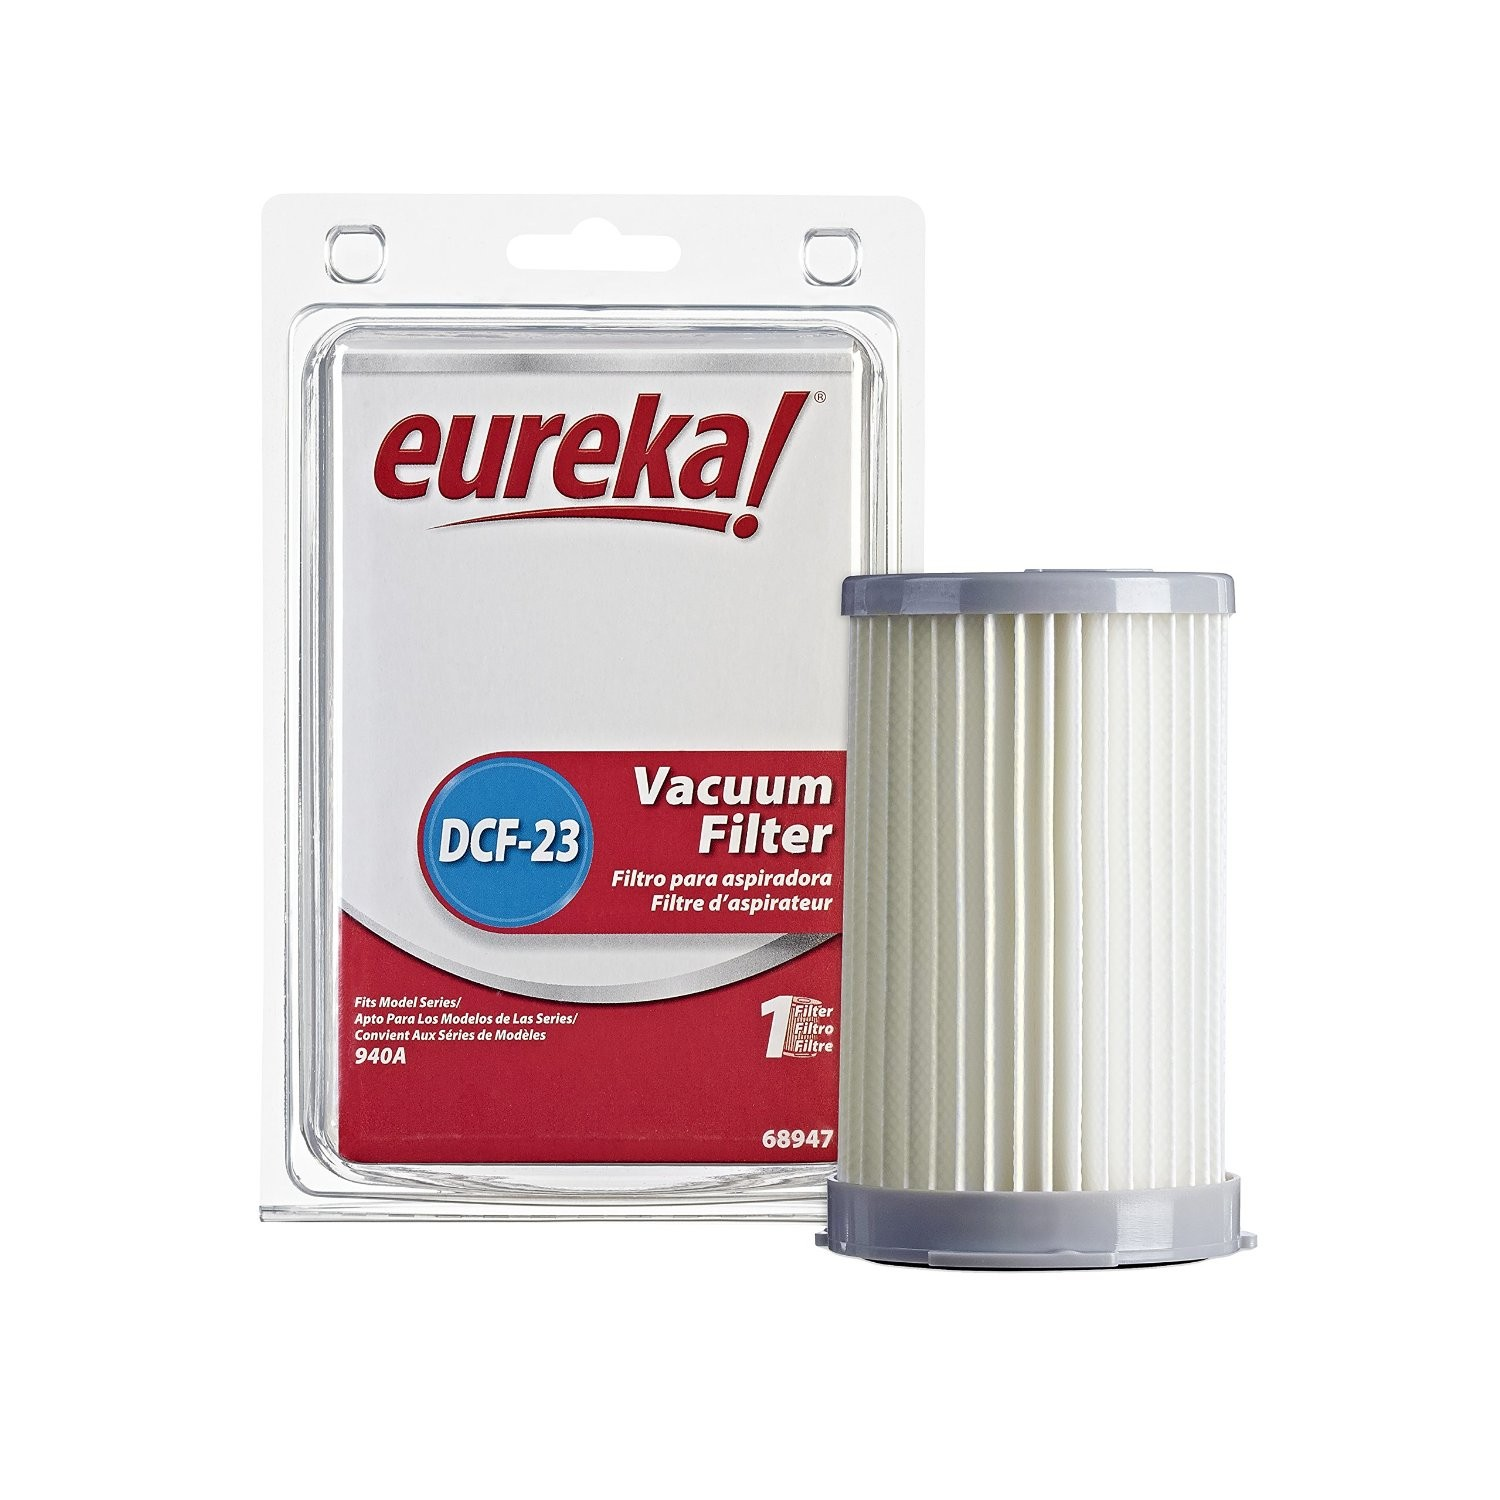 Eureka Genuine DCF-23 filter